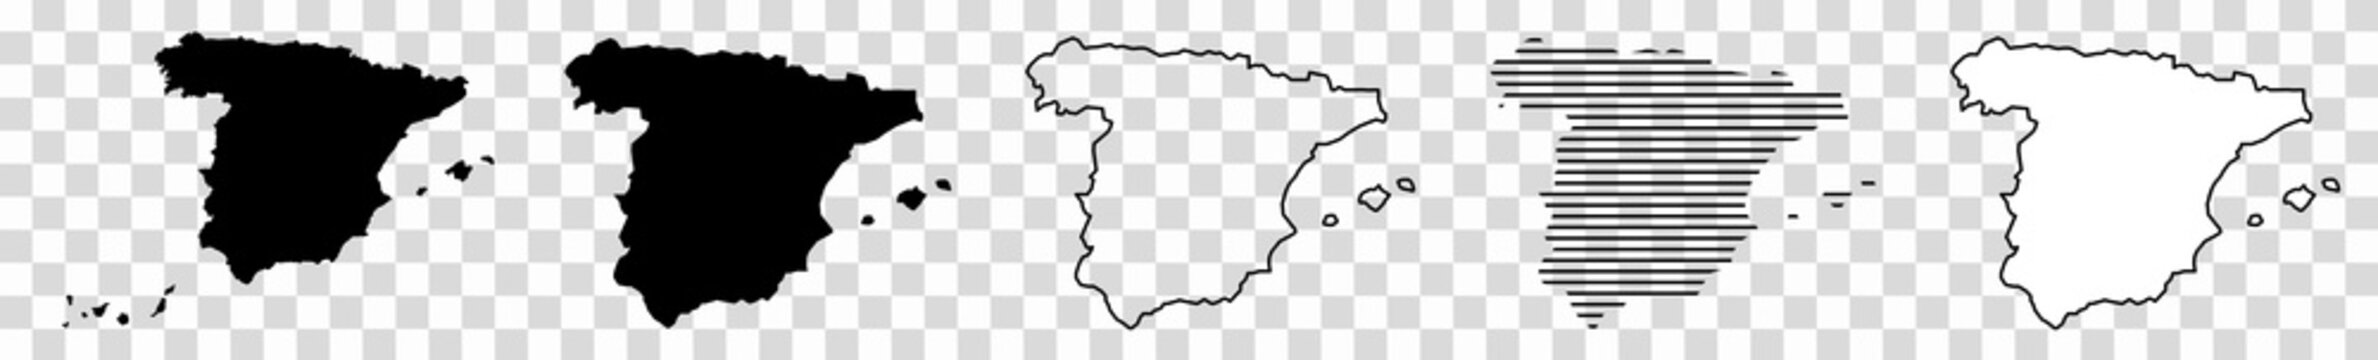 Spain Map Black | Spanish Border | State Country | Transparent Isolated | Variations